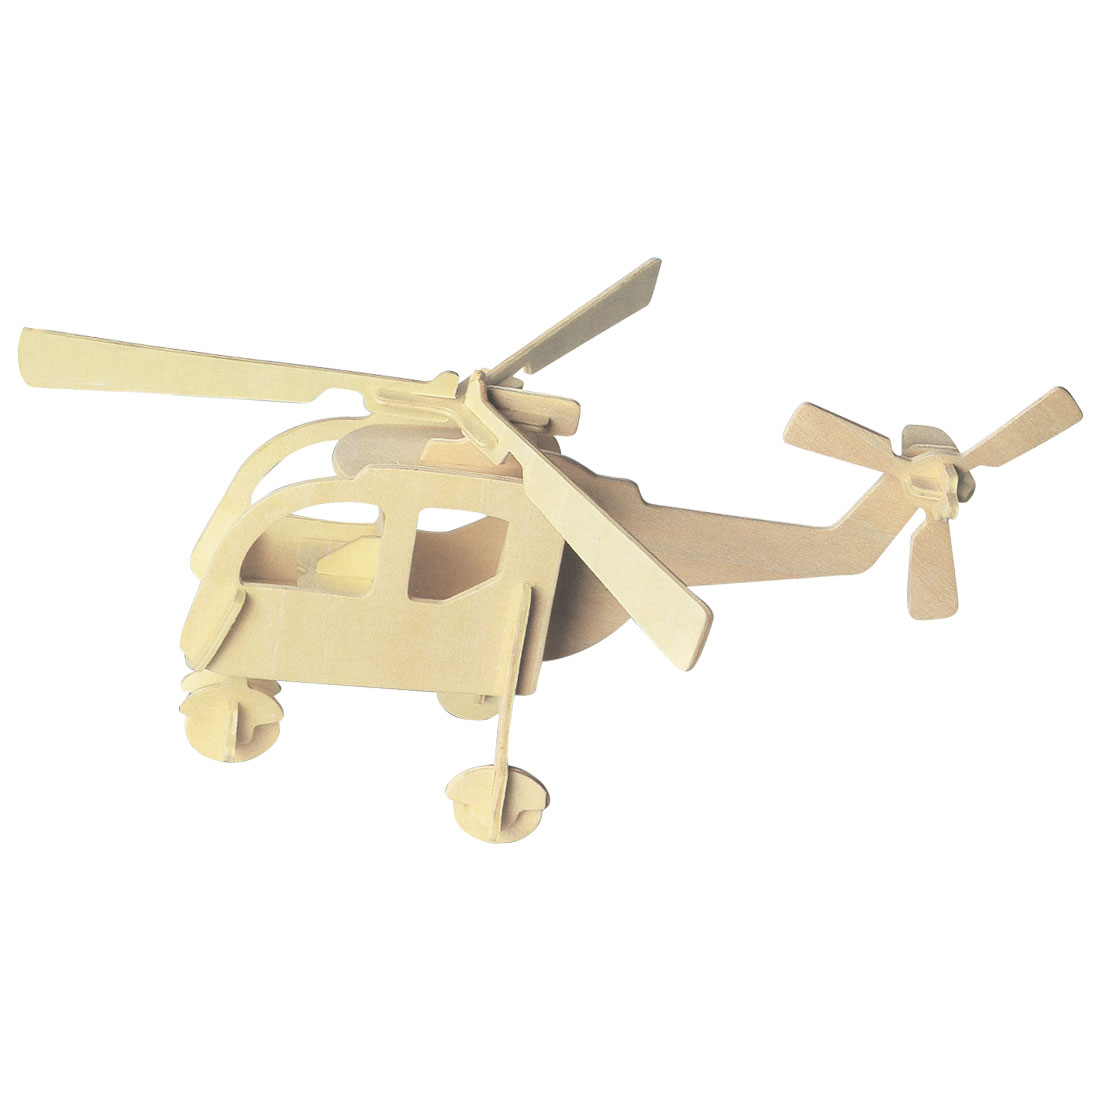 DIY Wooden 3D Helicopter Model Woodcraft Construction Kit Educational Puzzle Toy